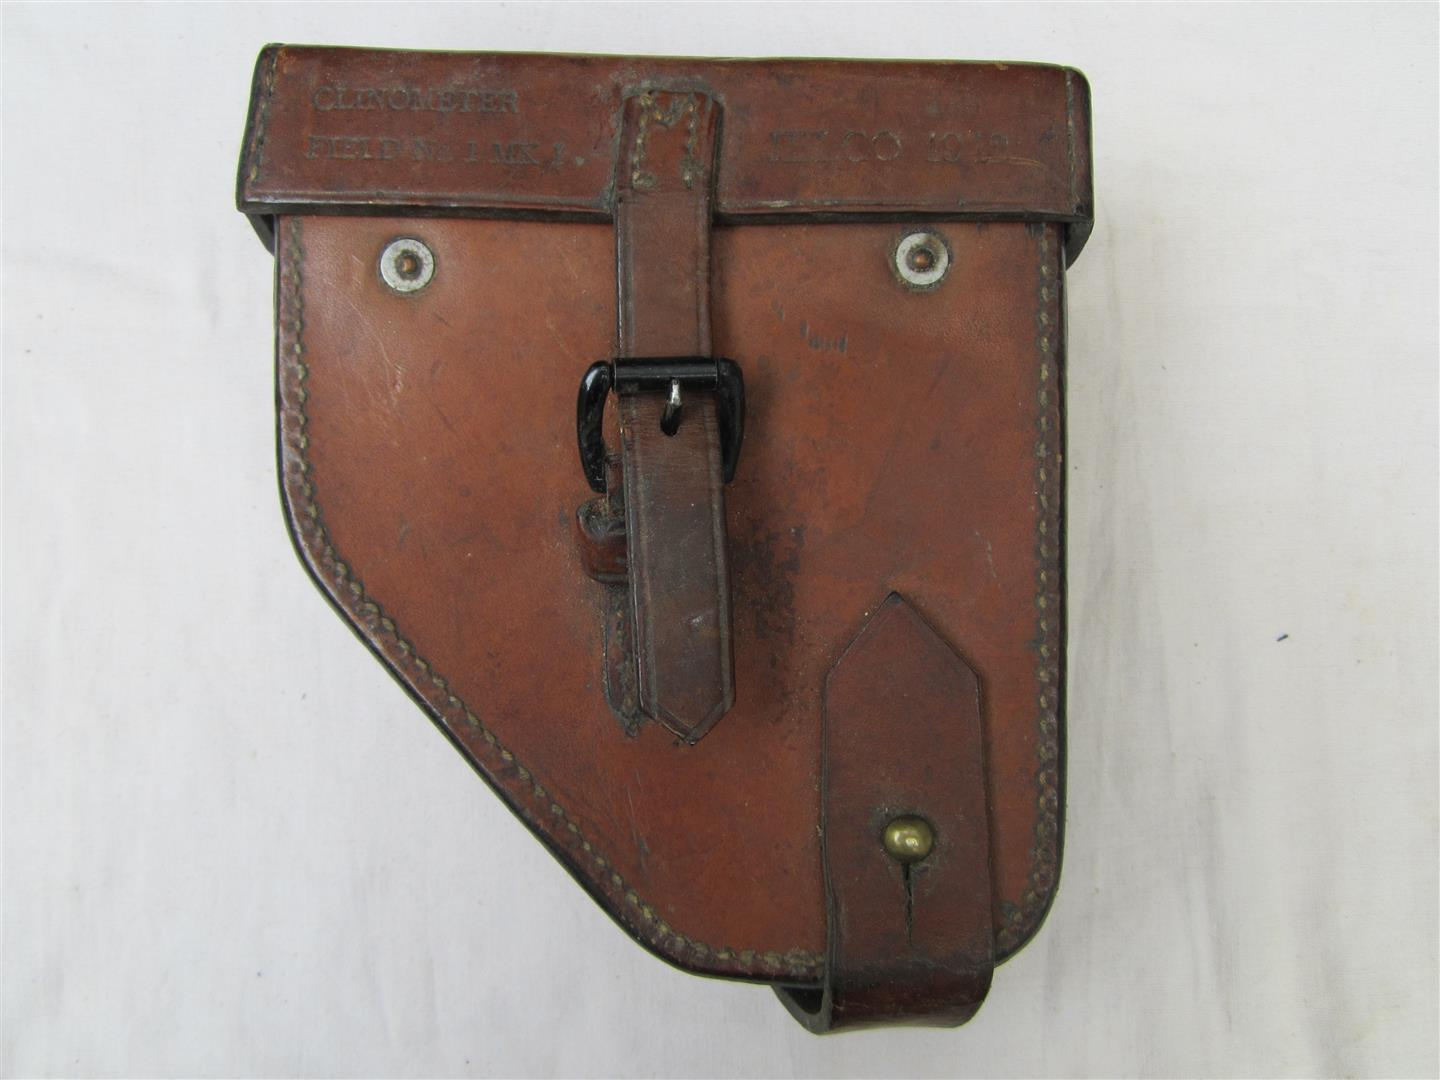 WW2 British Clinometer Pouch